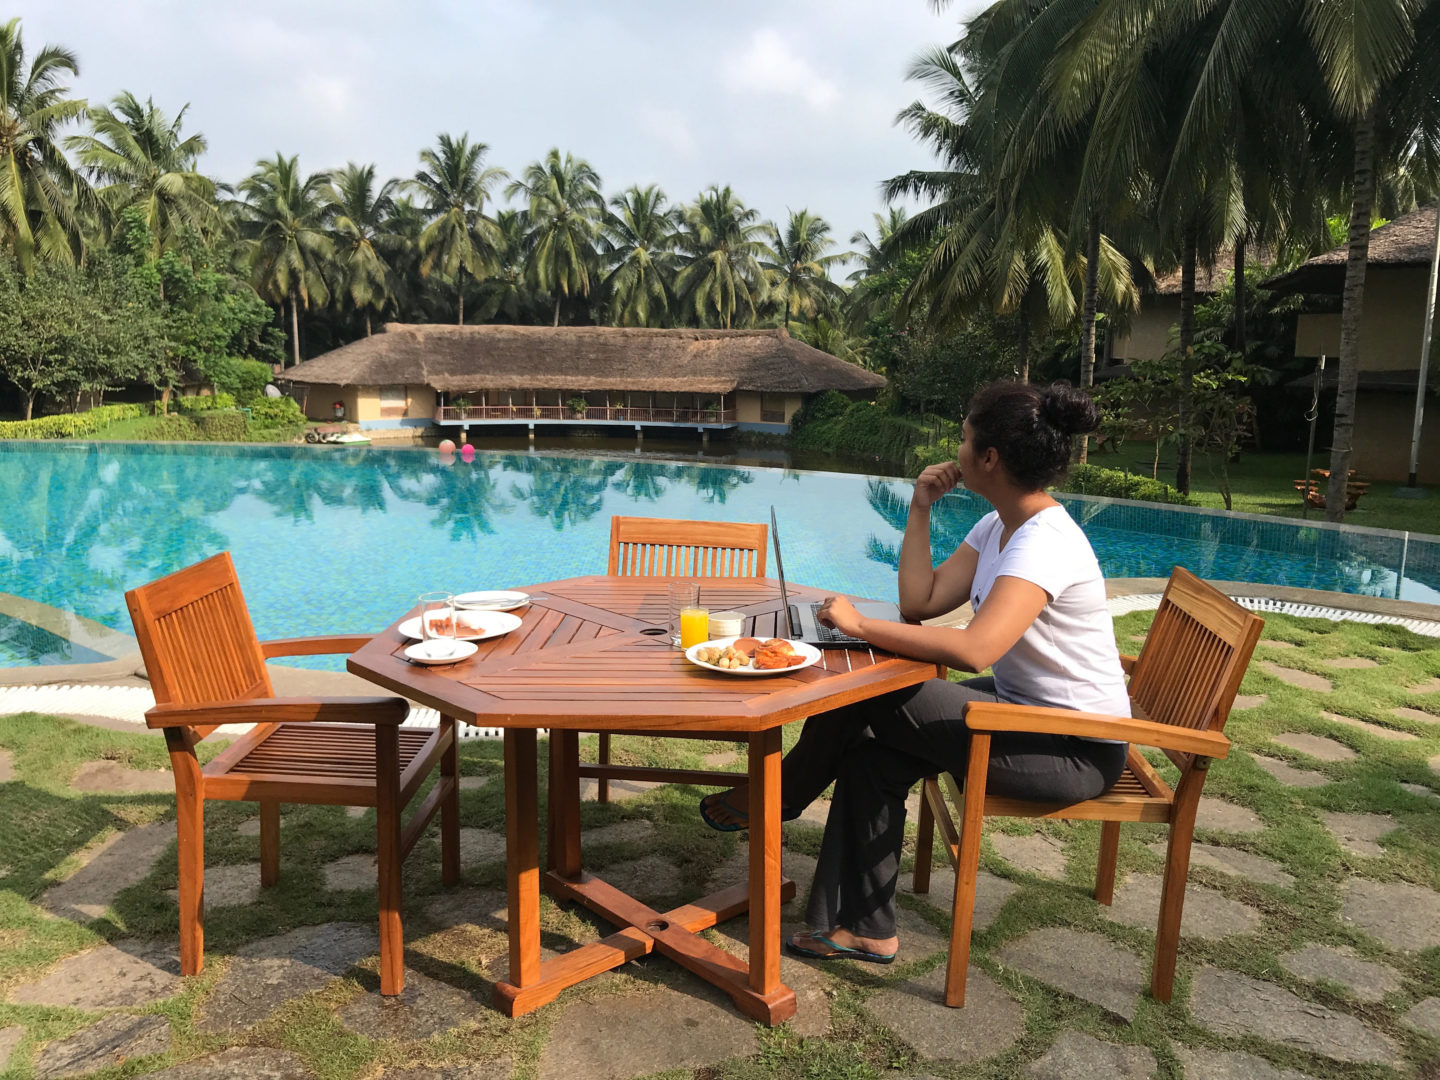 Coco Lagoon by Great Mount – A Palm Tree Paradise in Pollachi, Tamil Nadu